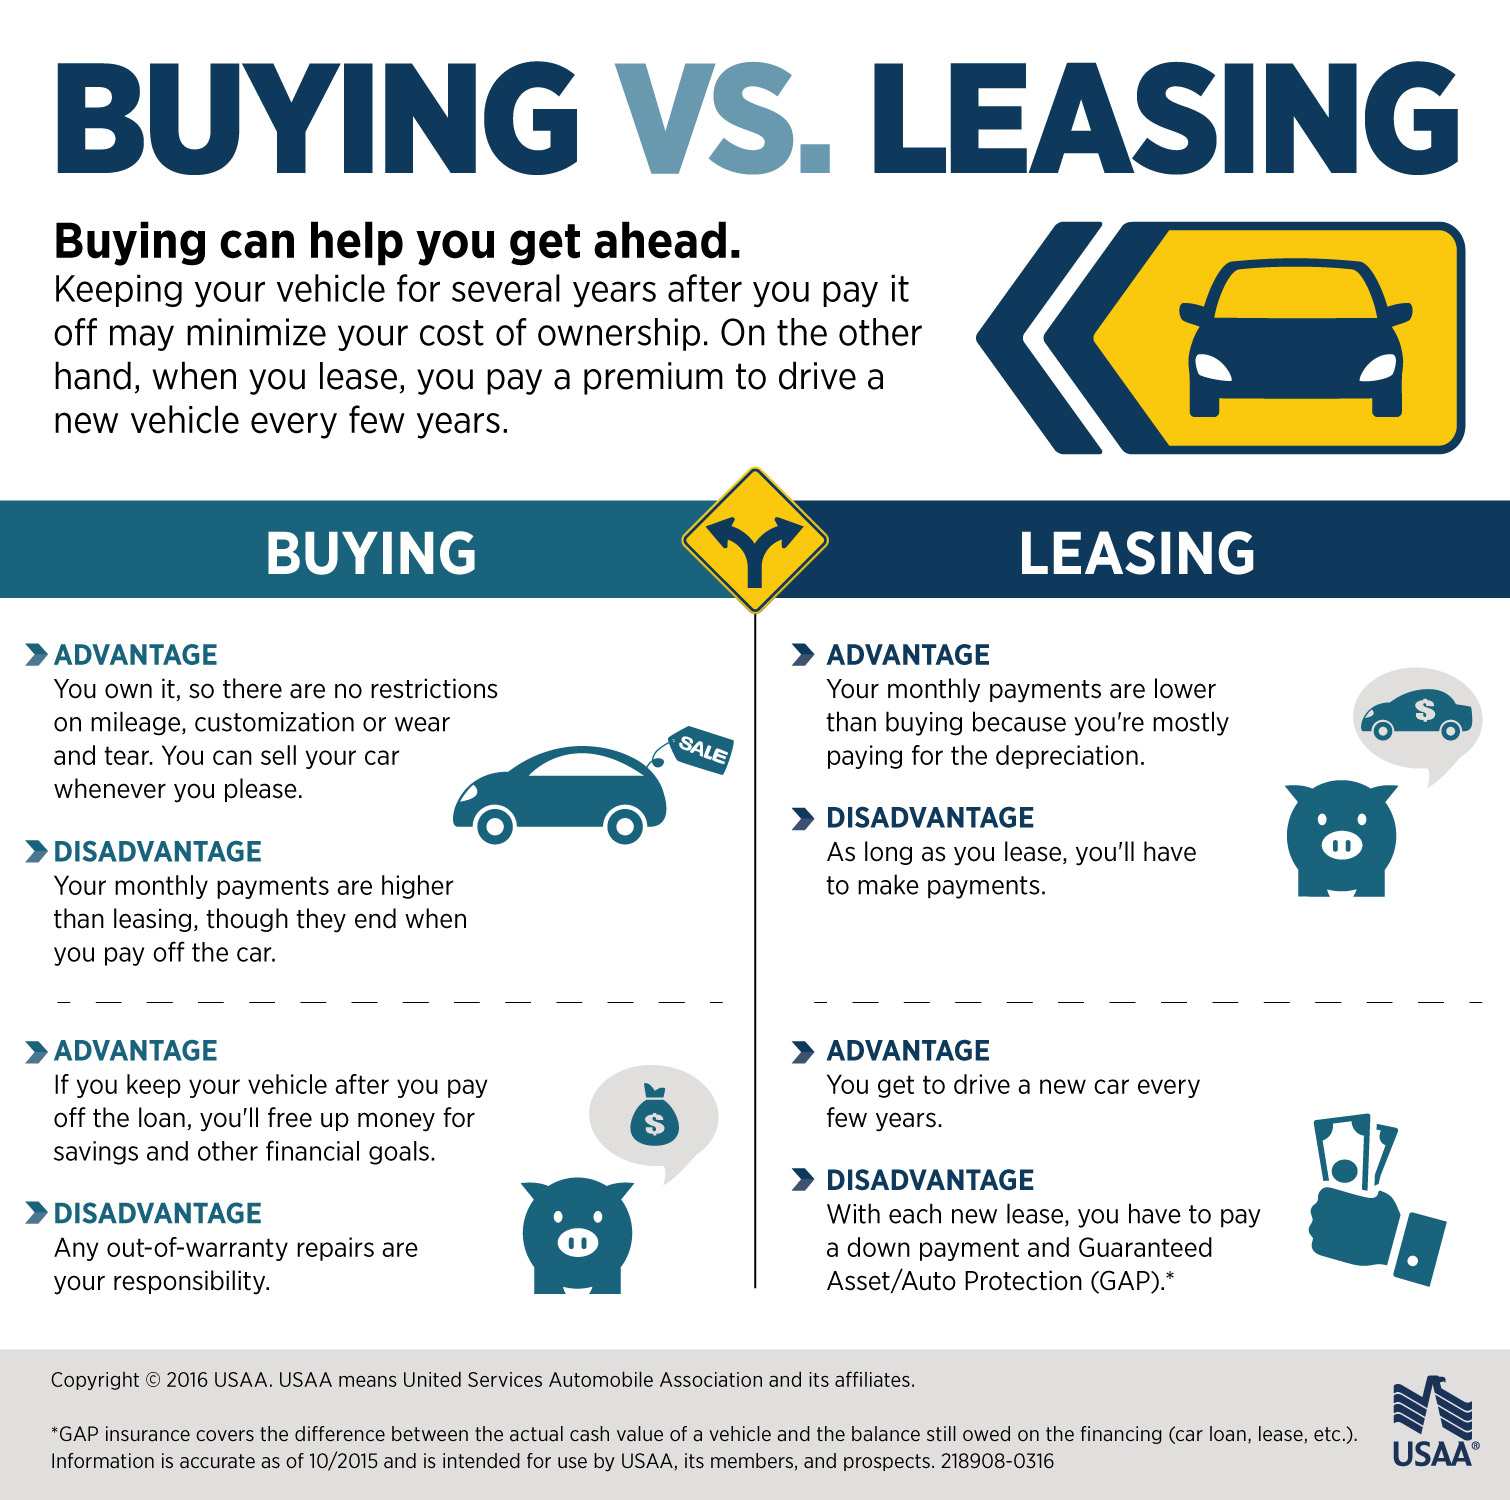 valley chevy  u2013 buying vs leasing a car infographic